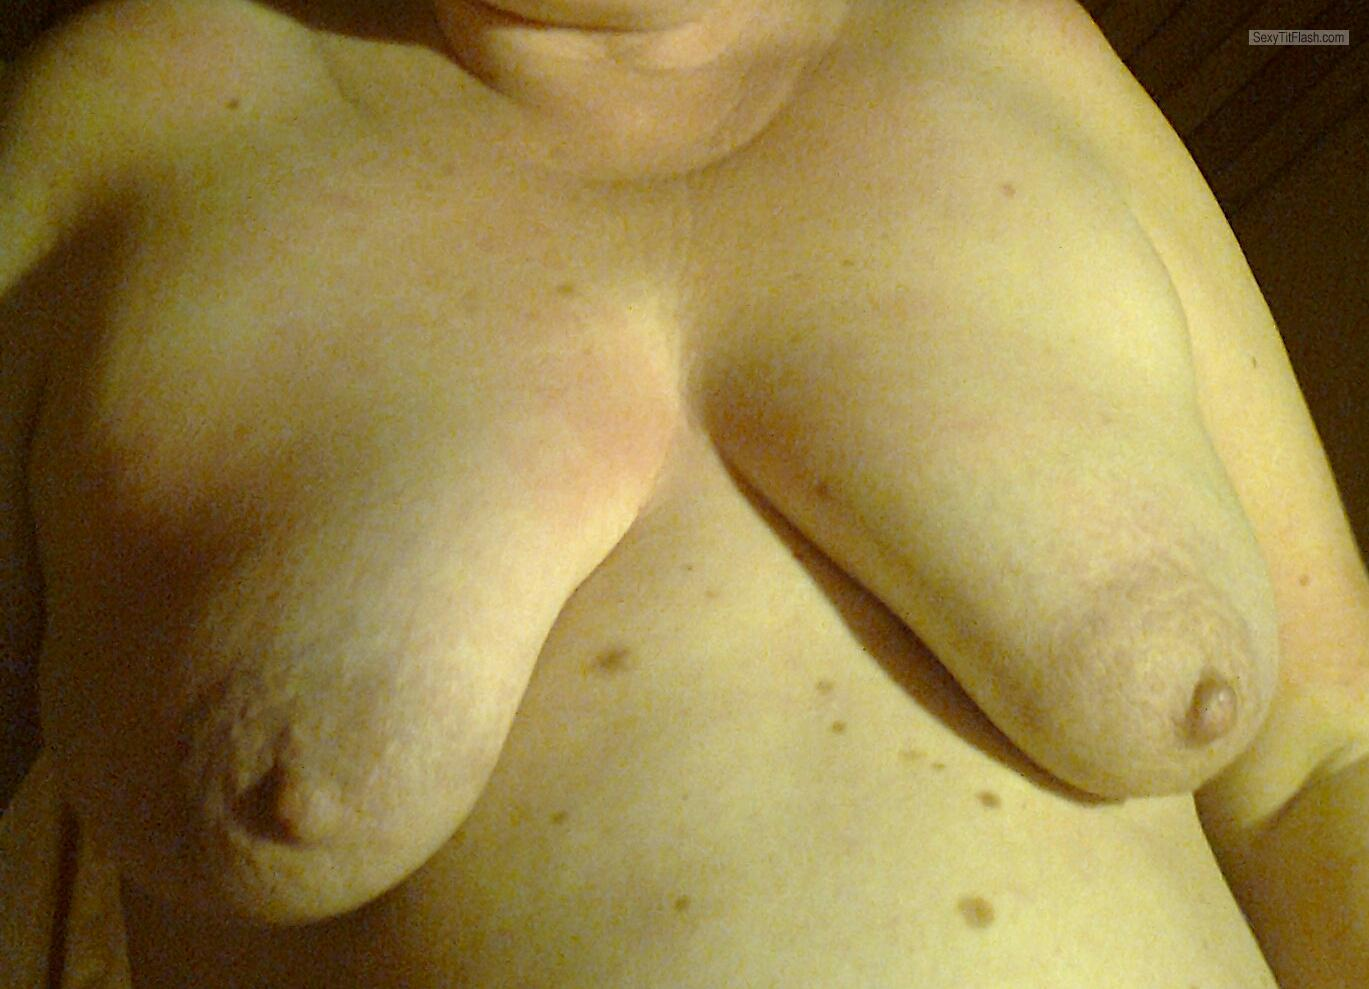 Tit Flash: My Medium Tits - Susi from Germany